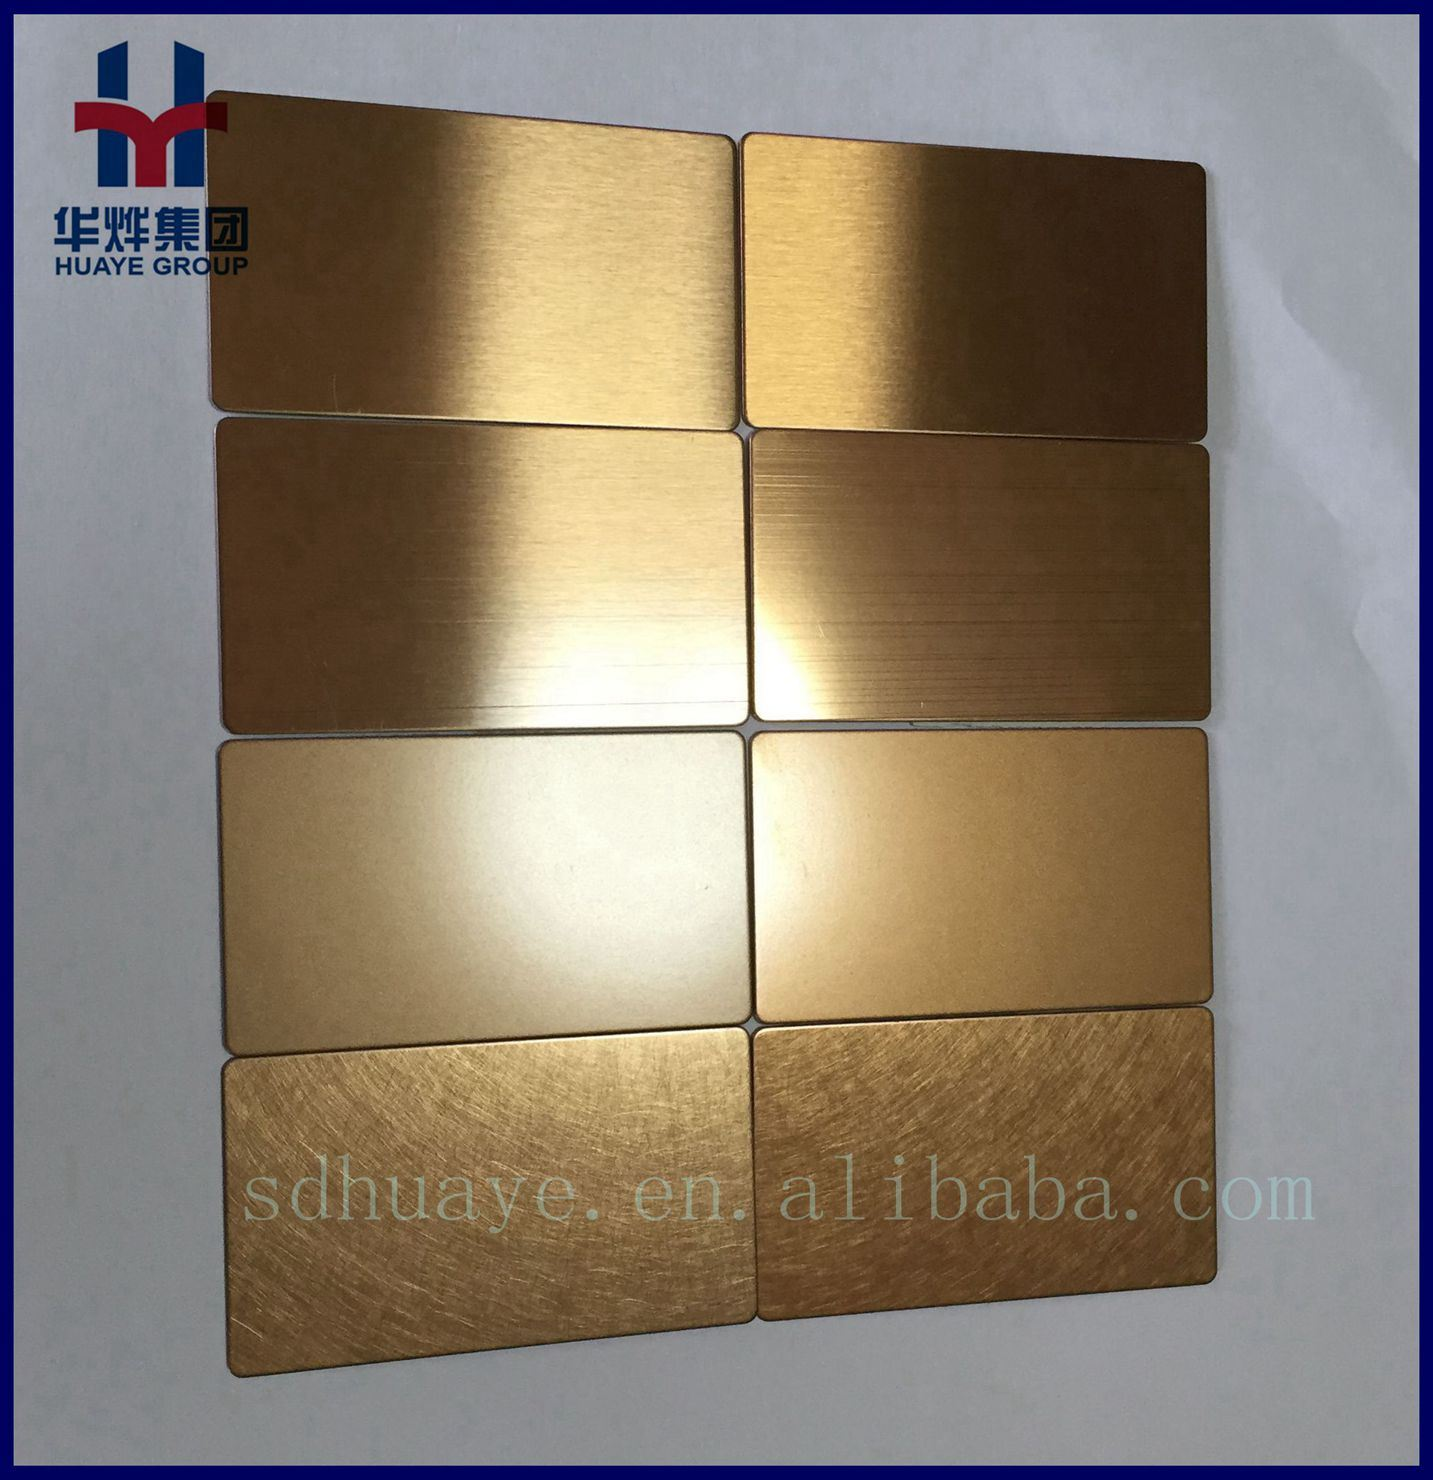 AISI 201 430 304 316 Stainless Steel Sheet Hairline Brass Color Decorative Sheet 4X8 Size Price